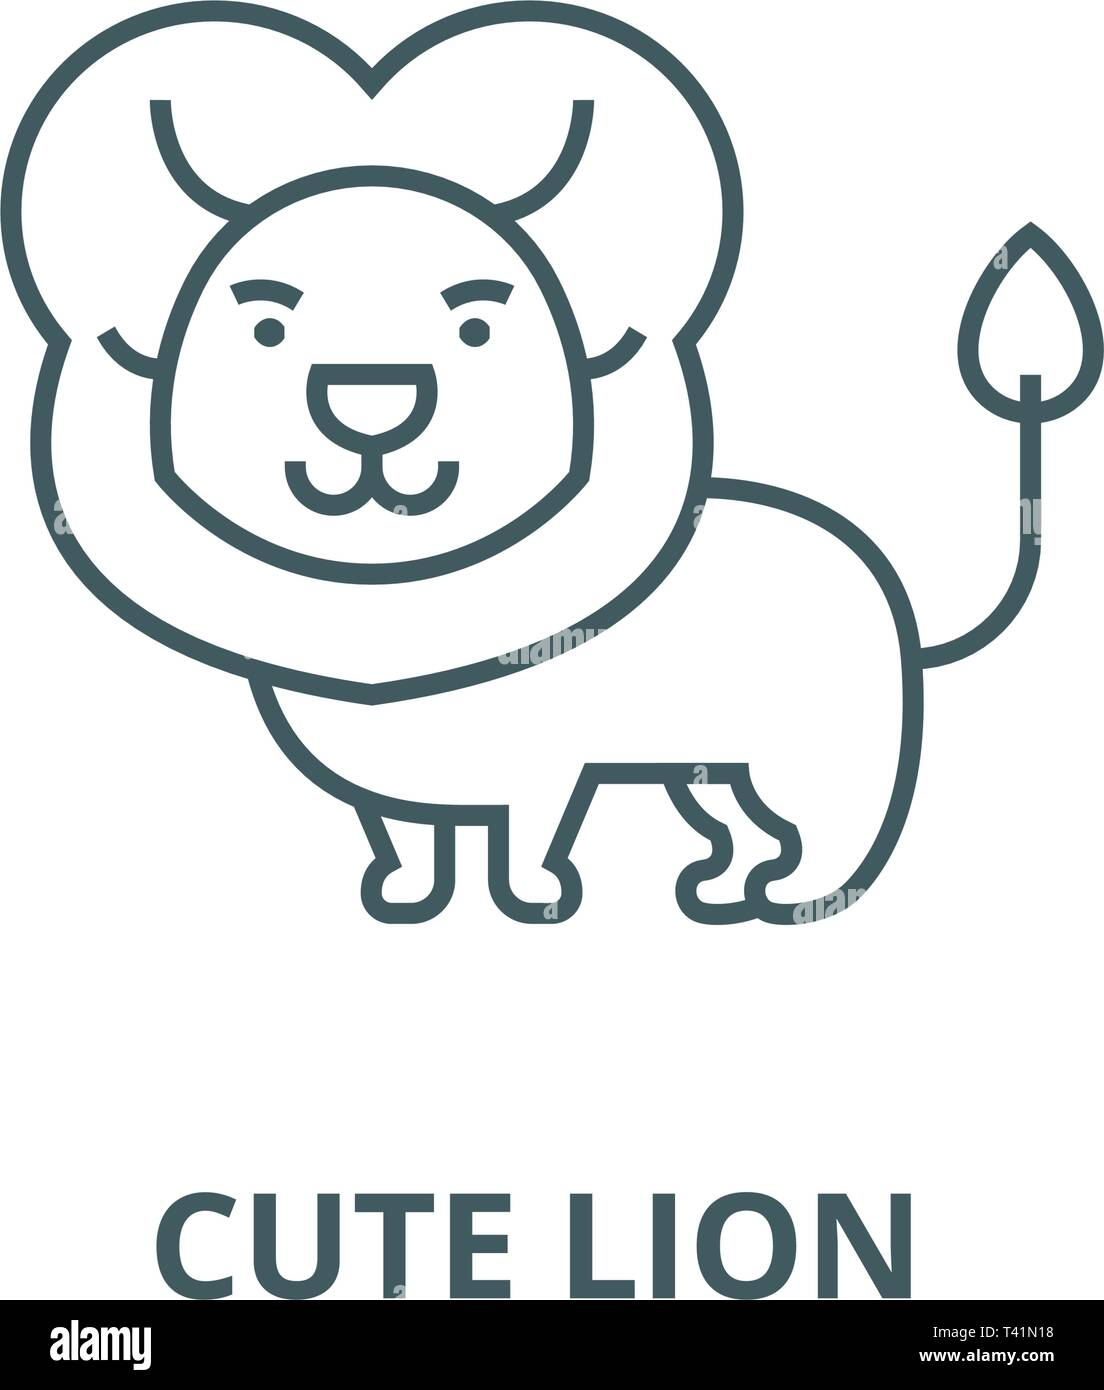 Cute Lion Line Icon Vector Cute Lion Outline Sign Concept Symbol Flat Illustration Stock Vector Image Art Alamy Lion cartoon transparent images (4,047). https www alamy com cute lion line icon vector cute lion outline sign concept symbol flat illustration image243442228 html